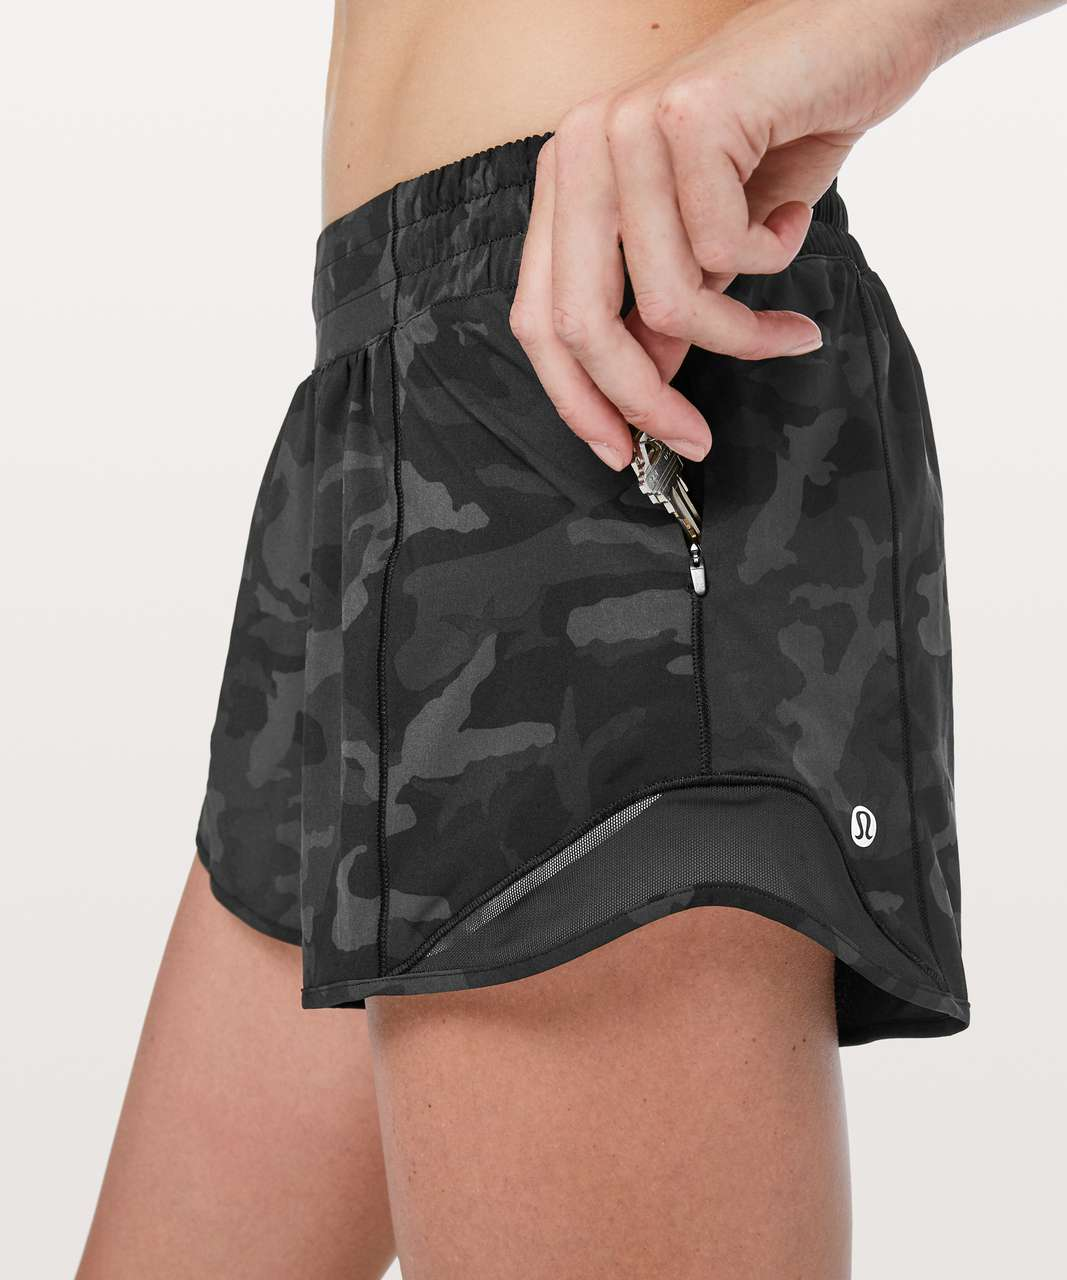 "Lululemon Hotty Hot Short II *Long 4"" - Incognito Camo Multi Grey / Black (First Release)"